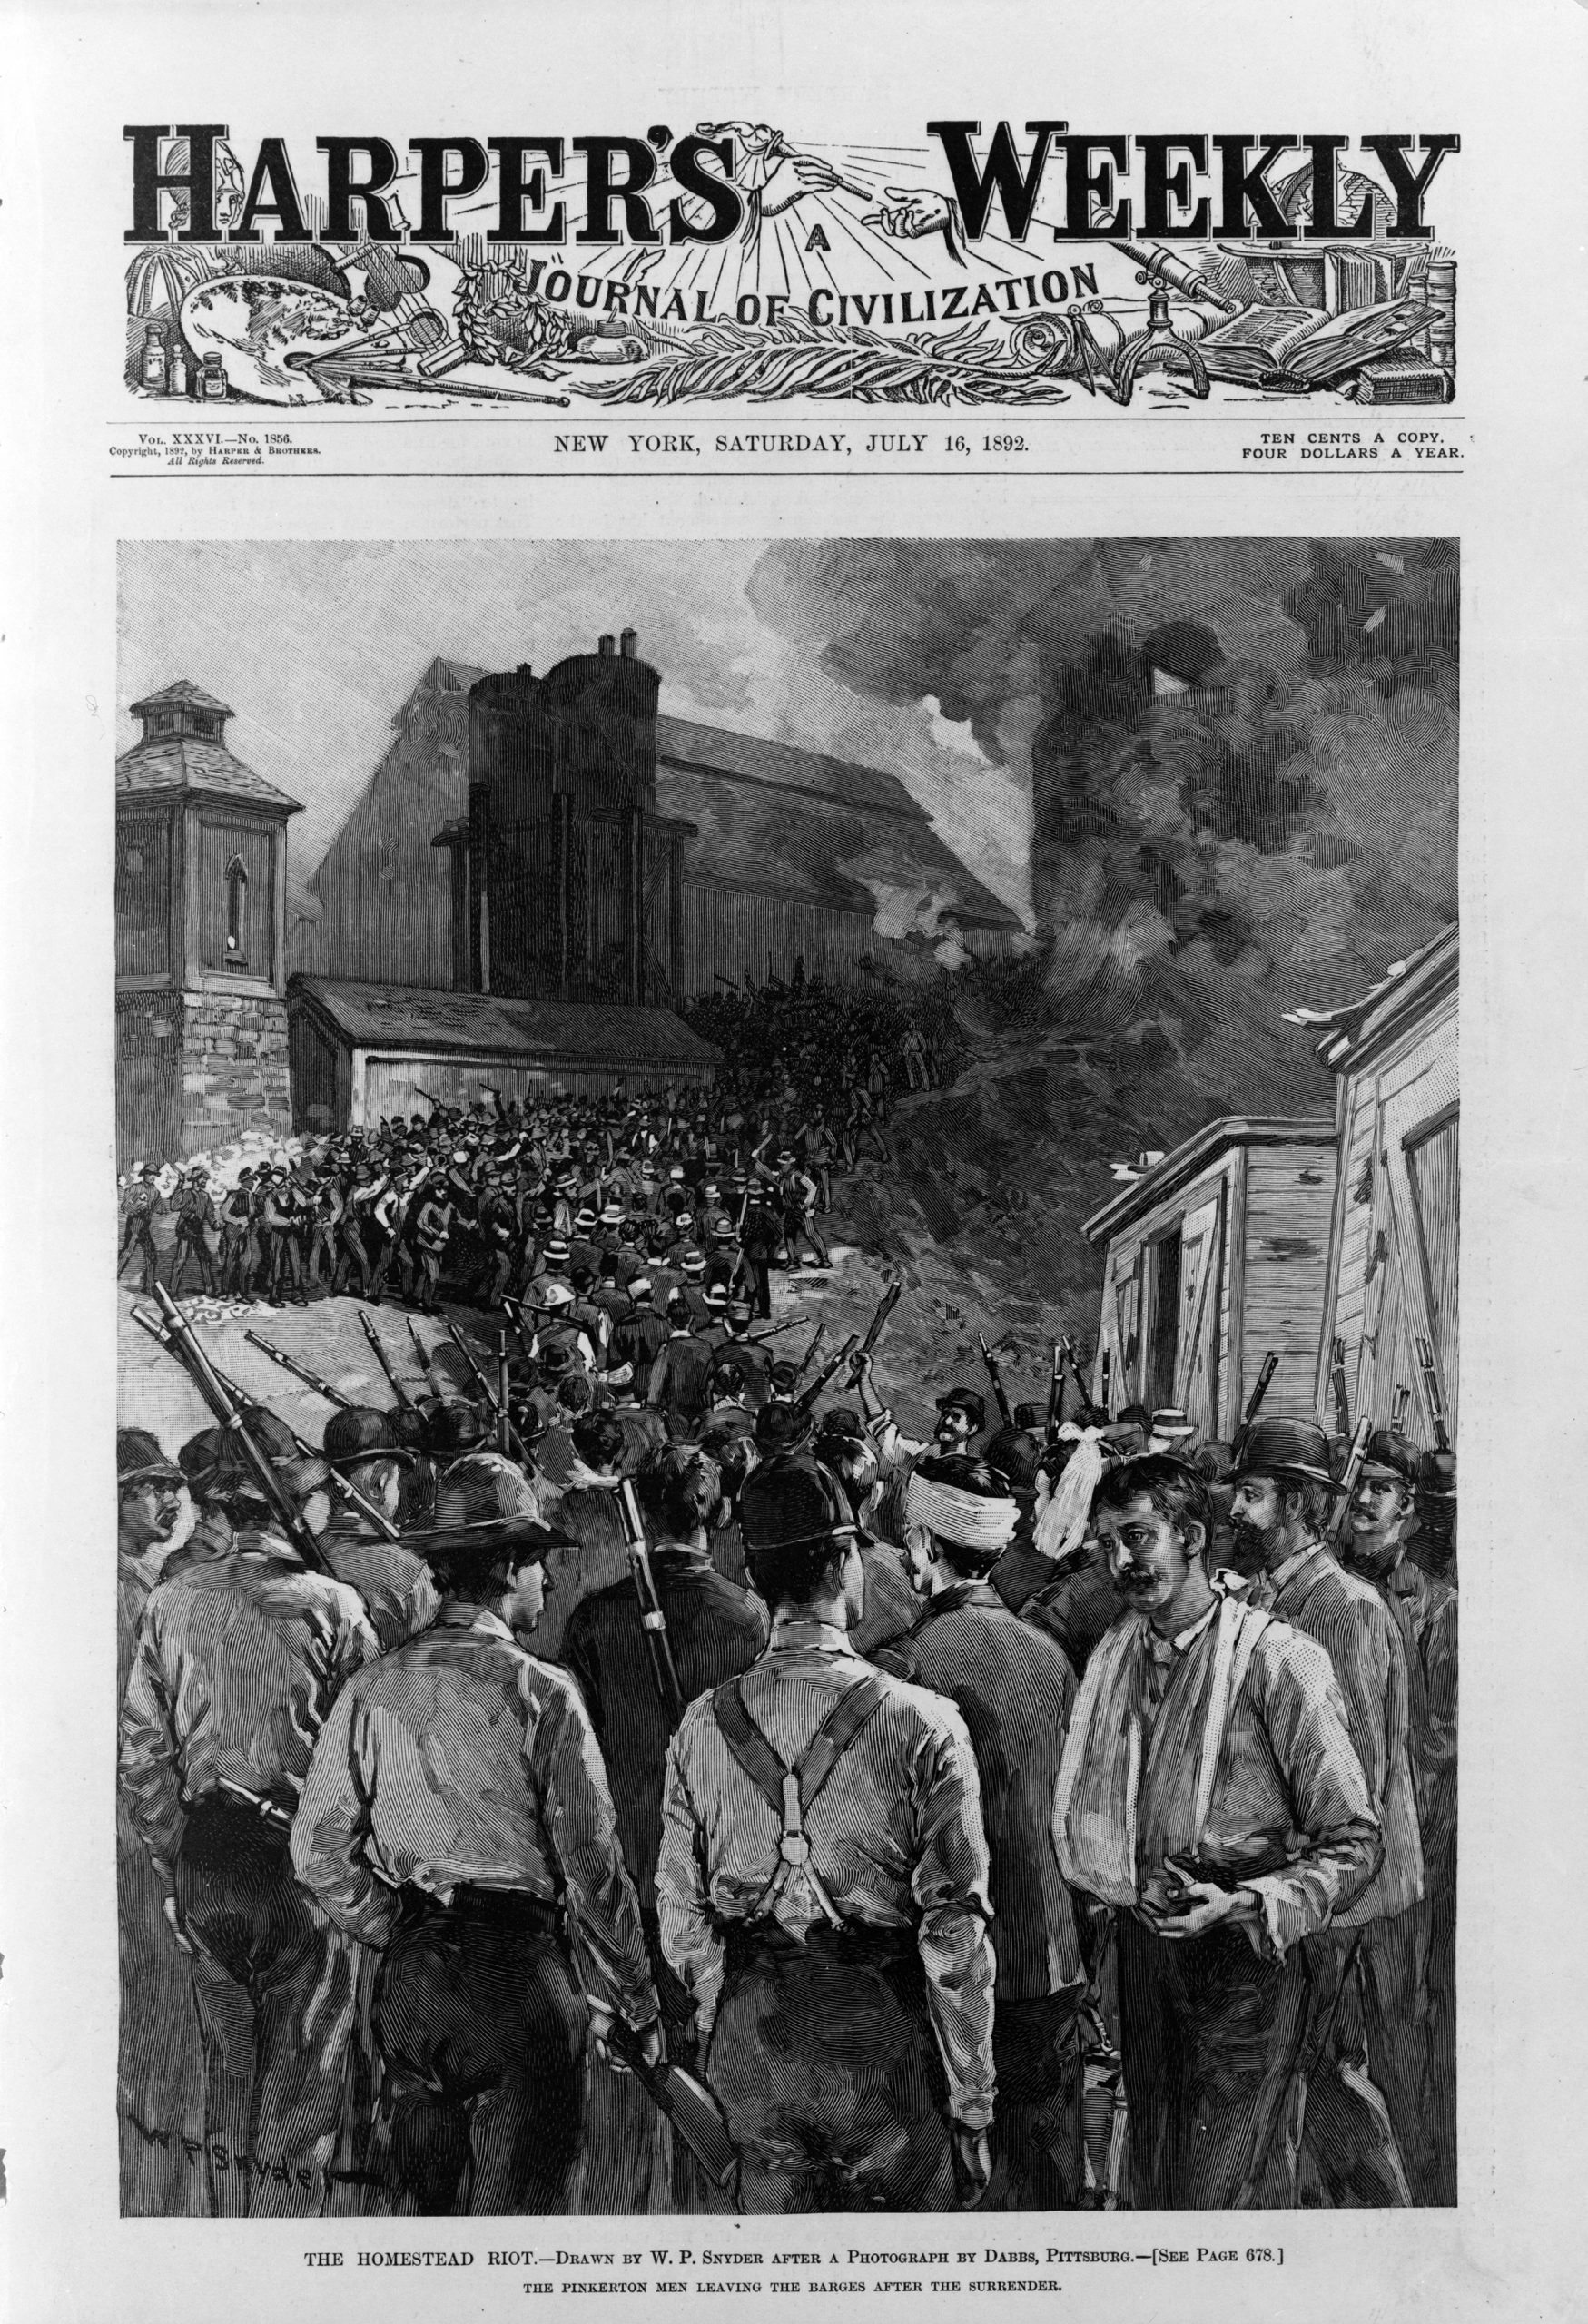 Pinkerton men leave the barges after their surrender during the Homestead strike